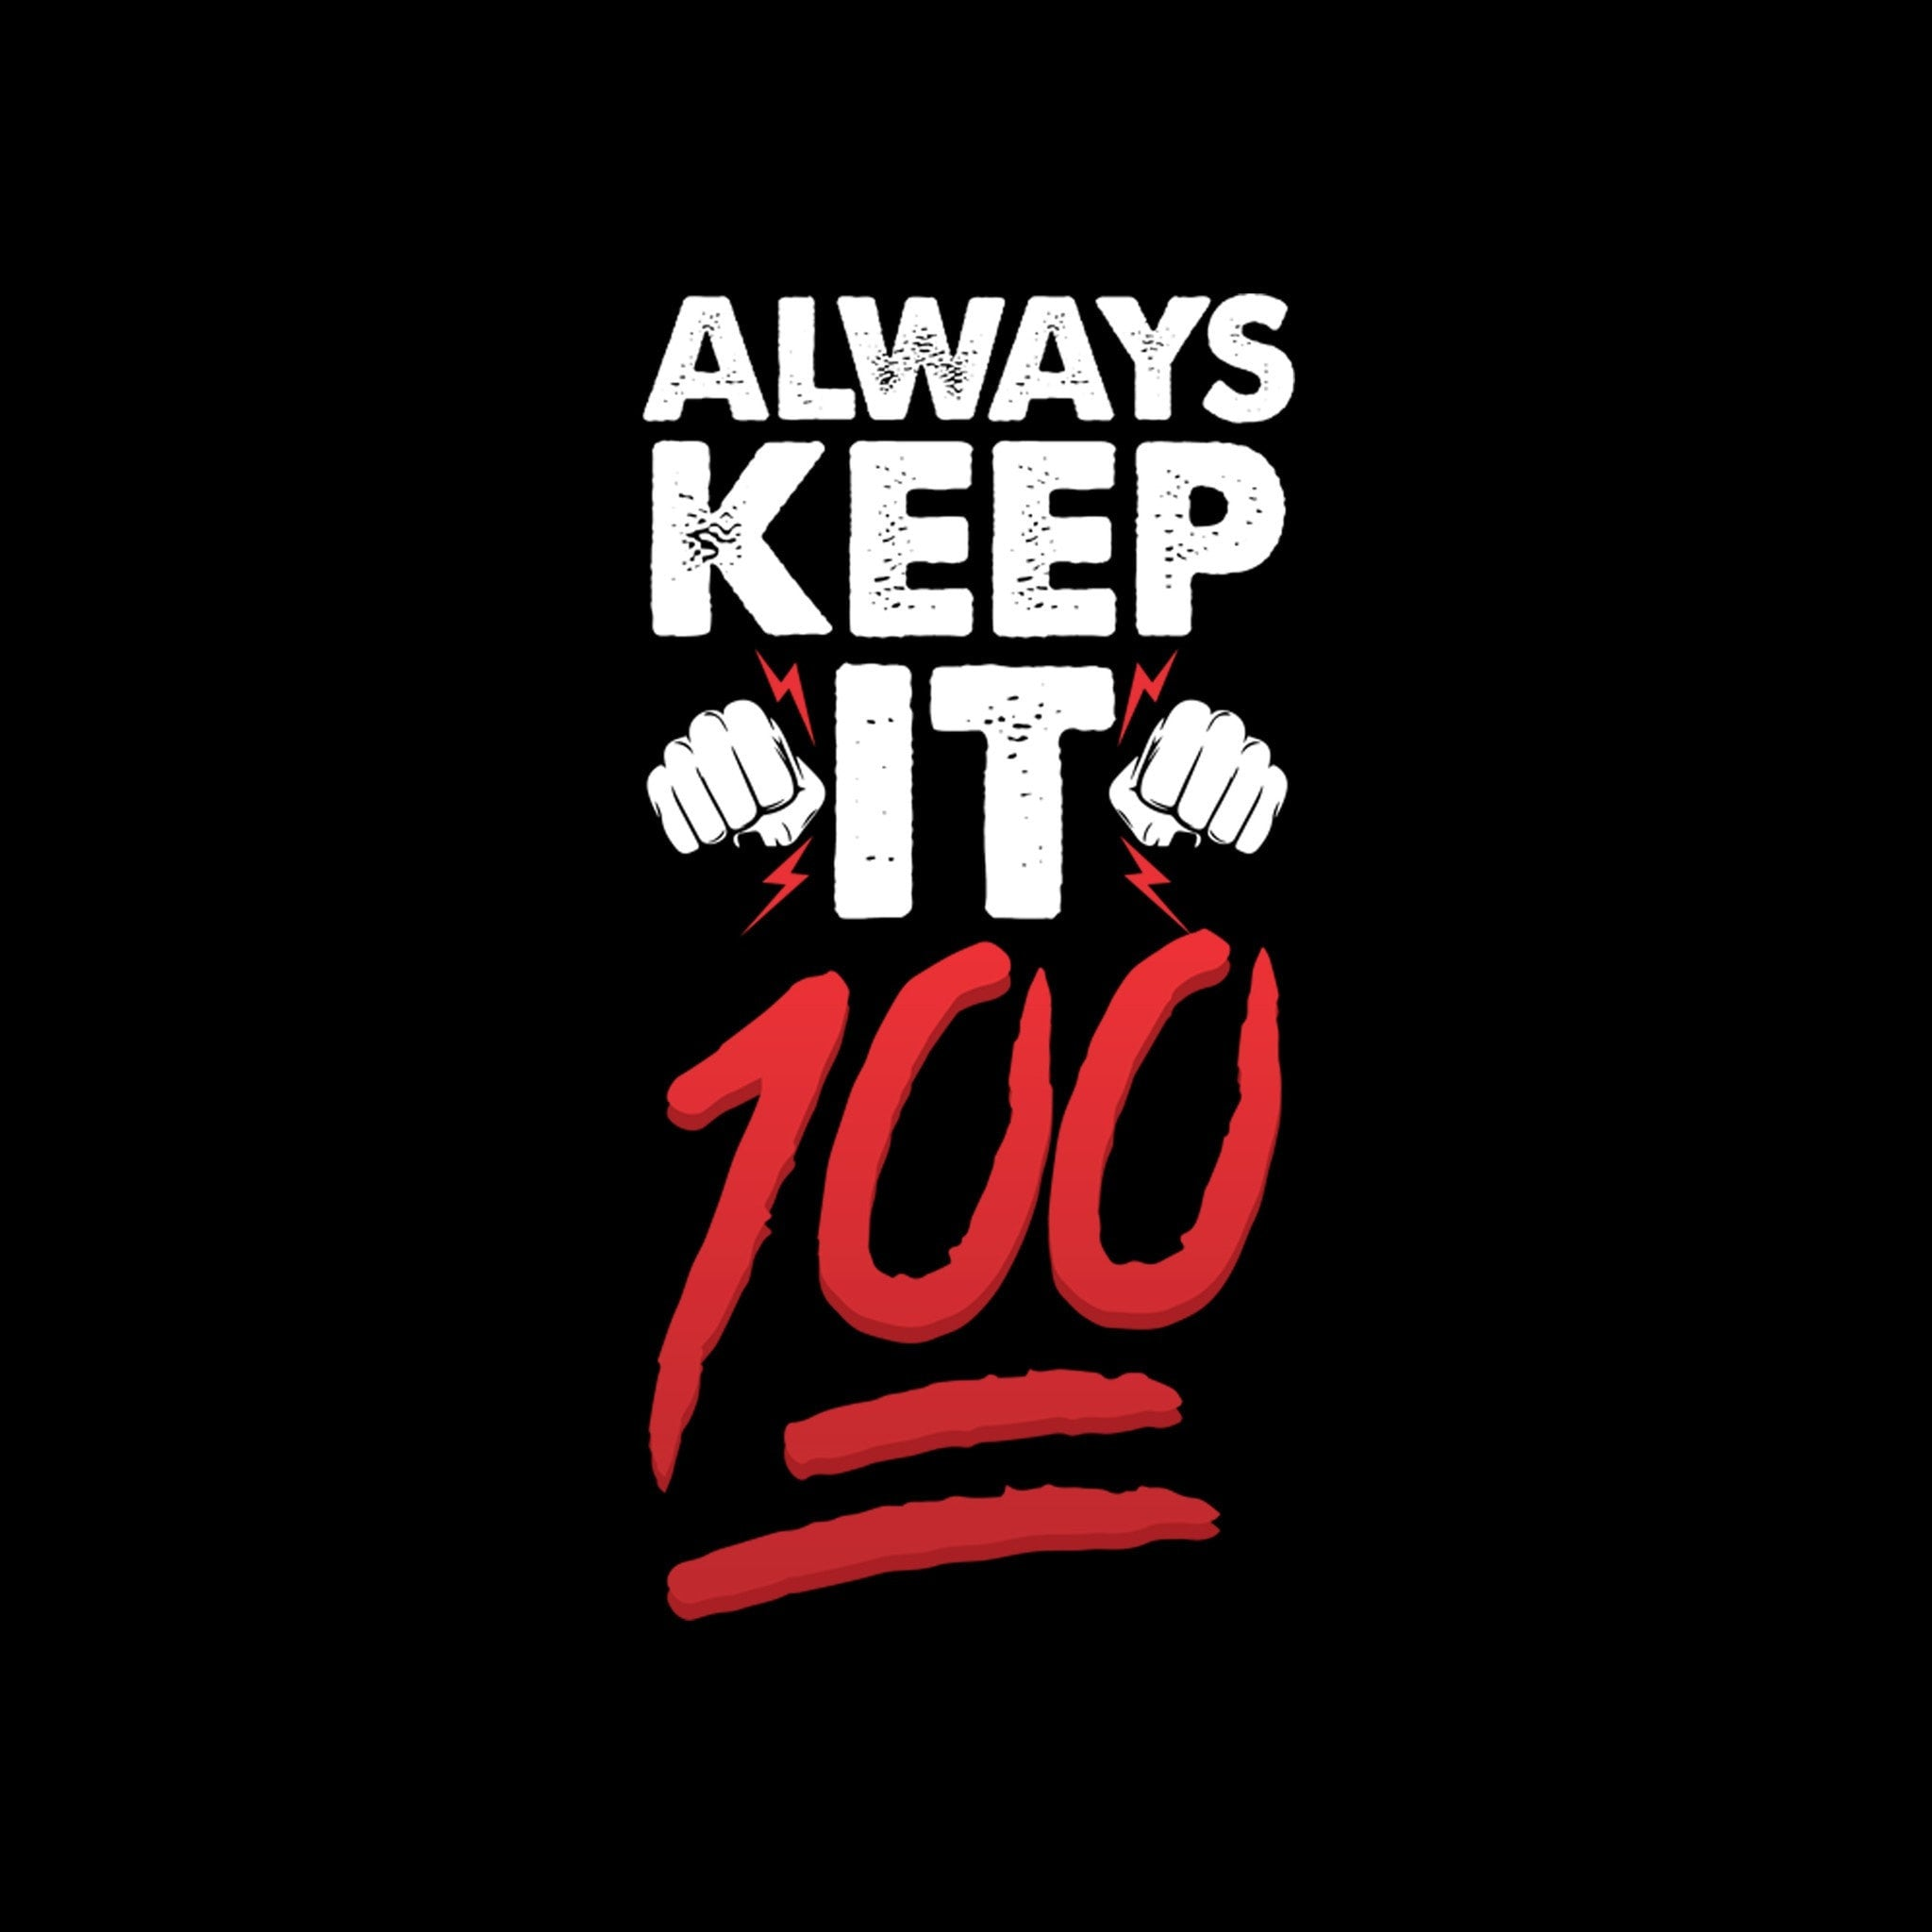 Keep 100 Quotes: Keep It 100 – Quotes of the Day